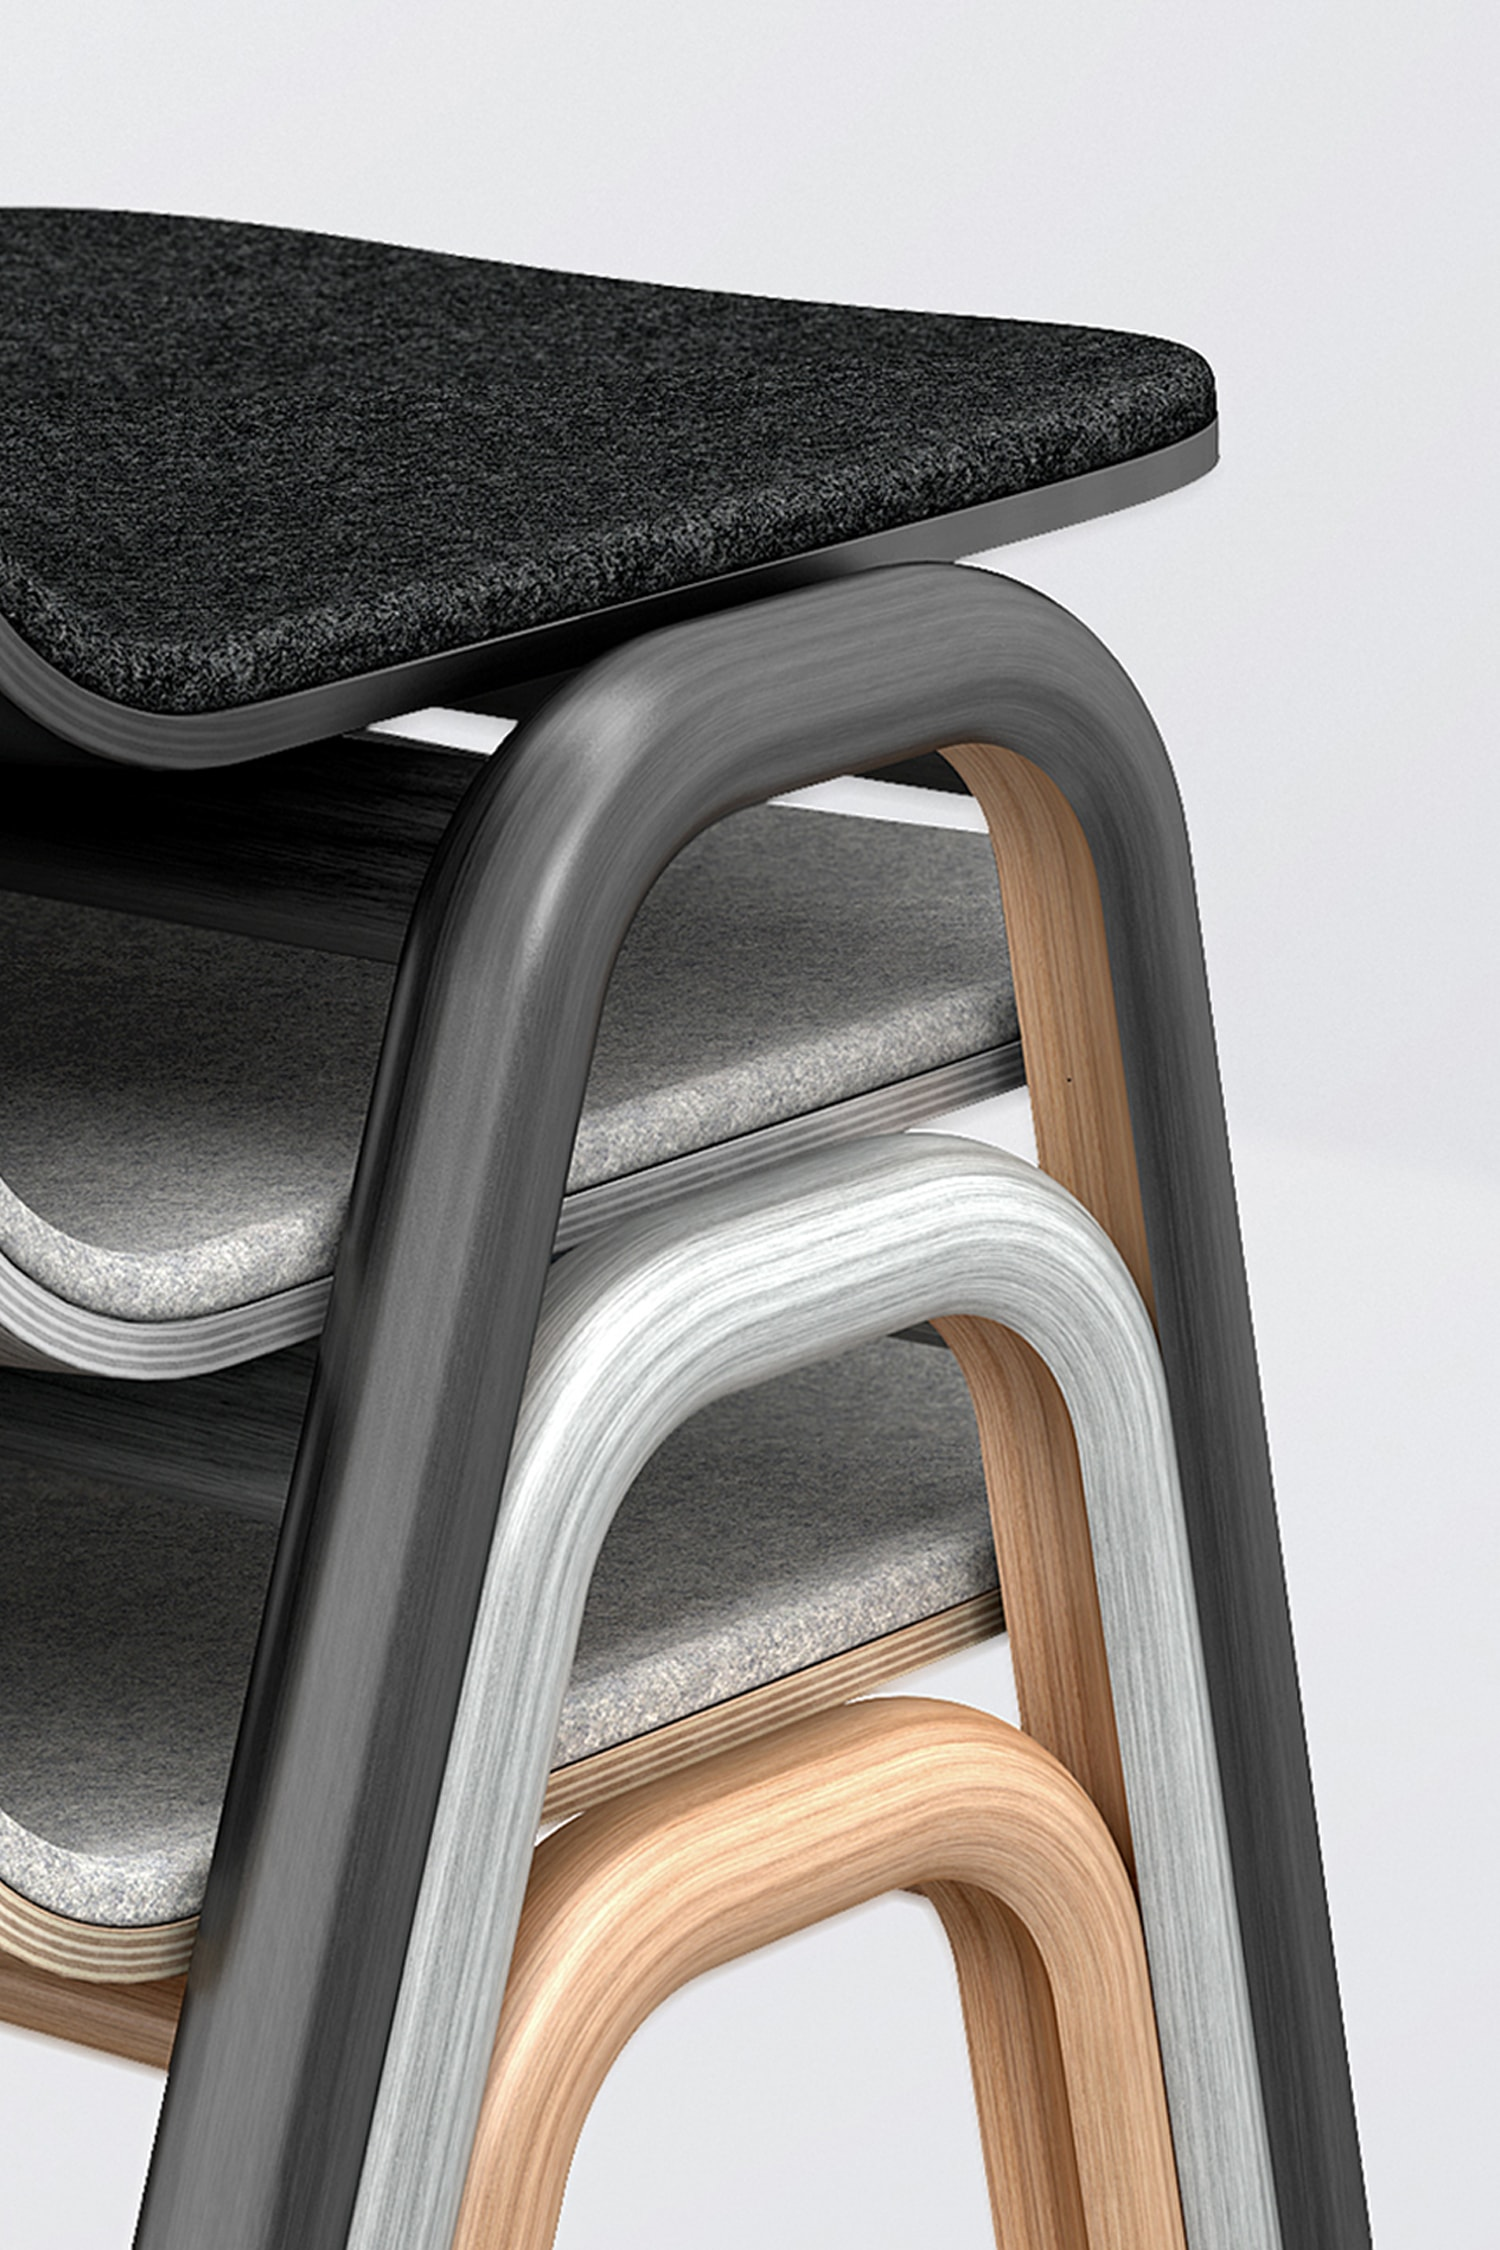 how are chairs made garden table and 2 b q blond industrial product design london fenn chair detail view of grey oak black the using steam